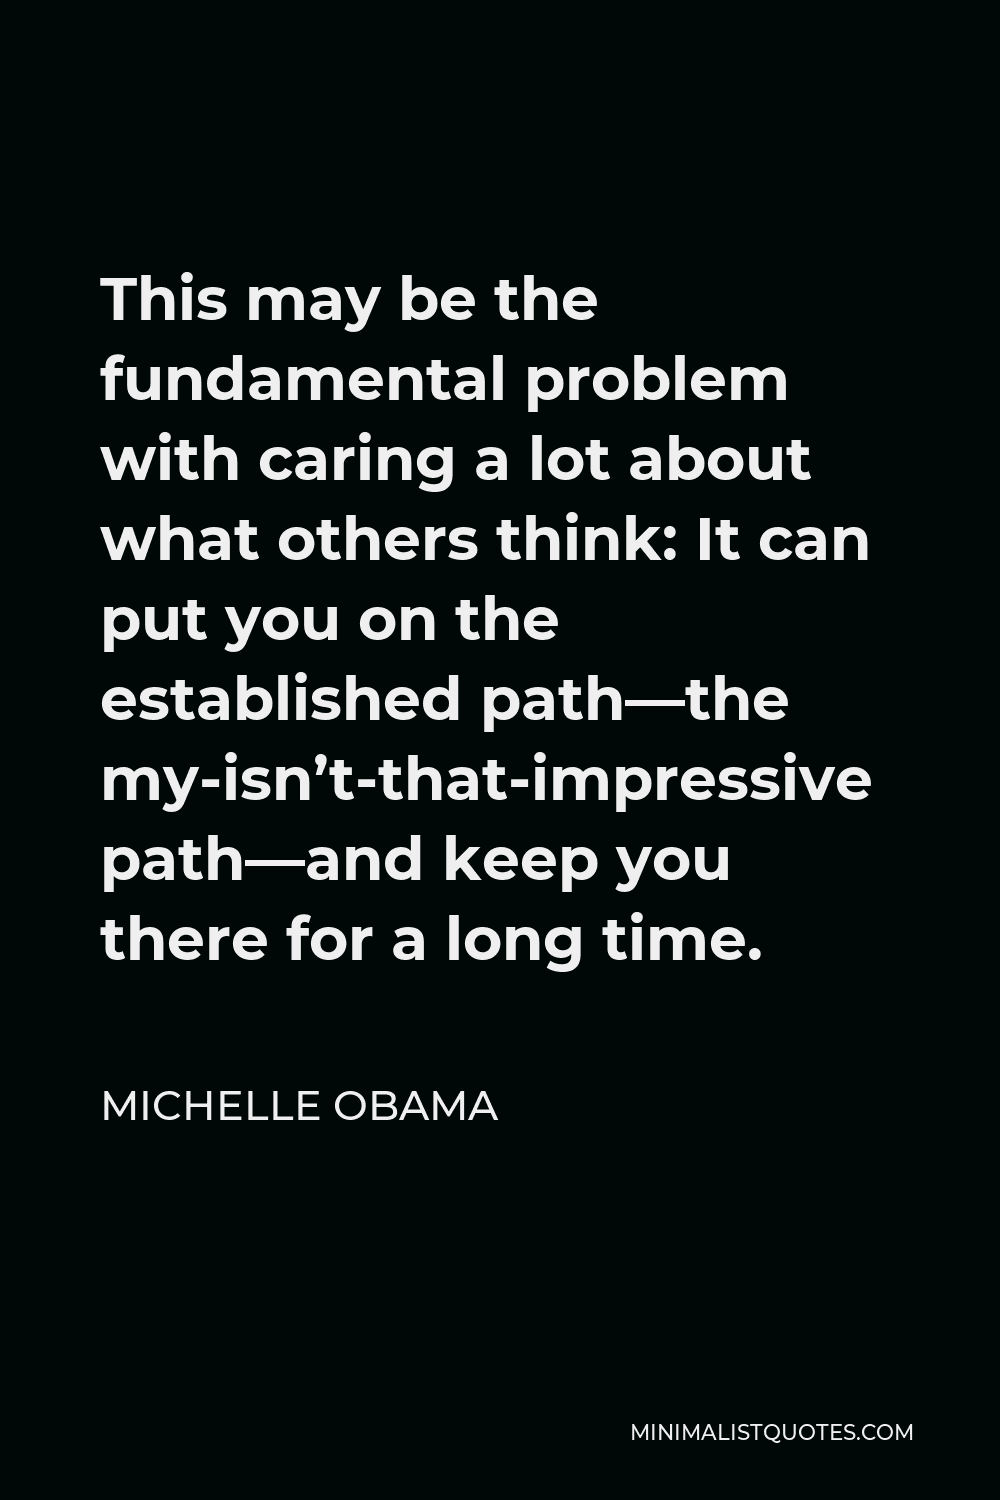 Michelle Obama Quote - This may be the fundamental problem with caring a lot about what others think: It can put you on the established path–the my-isn't-that-impressive- path– and keep you there for a long time.